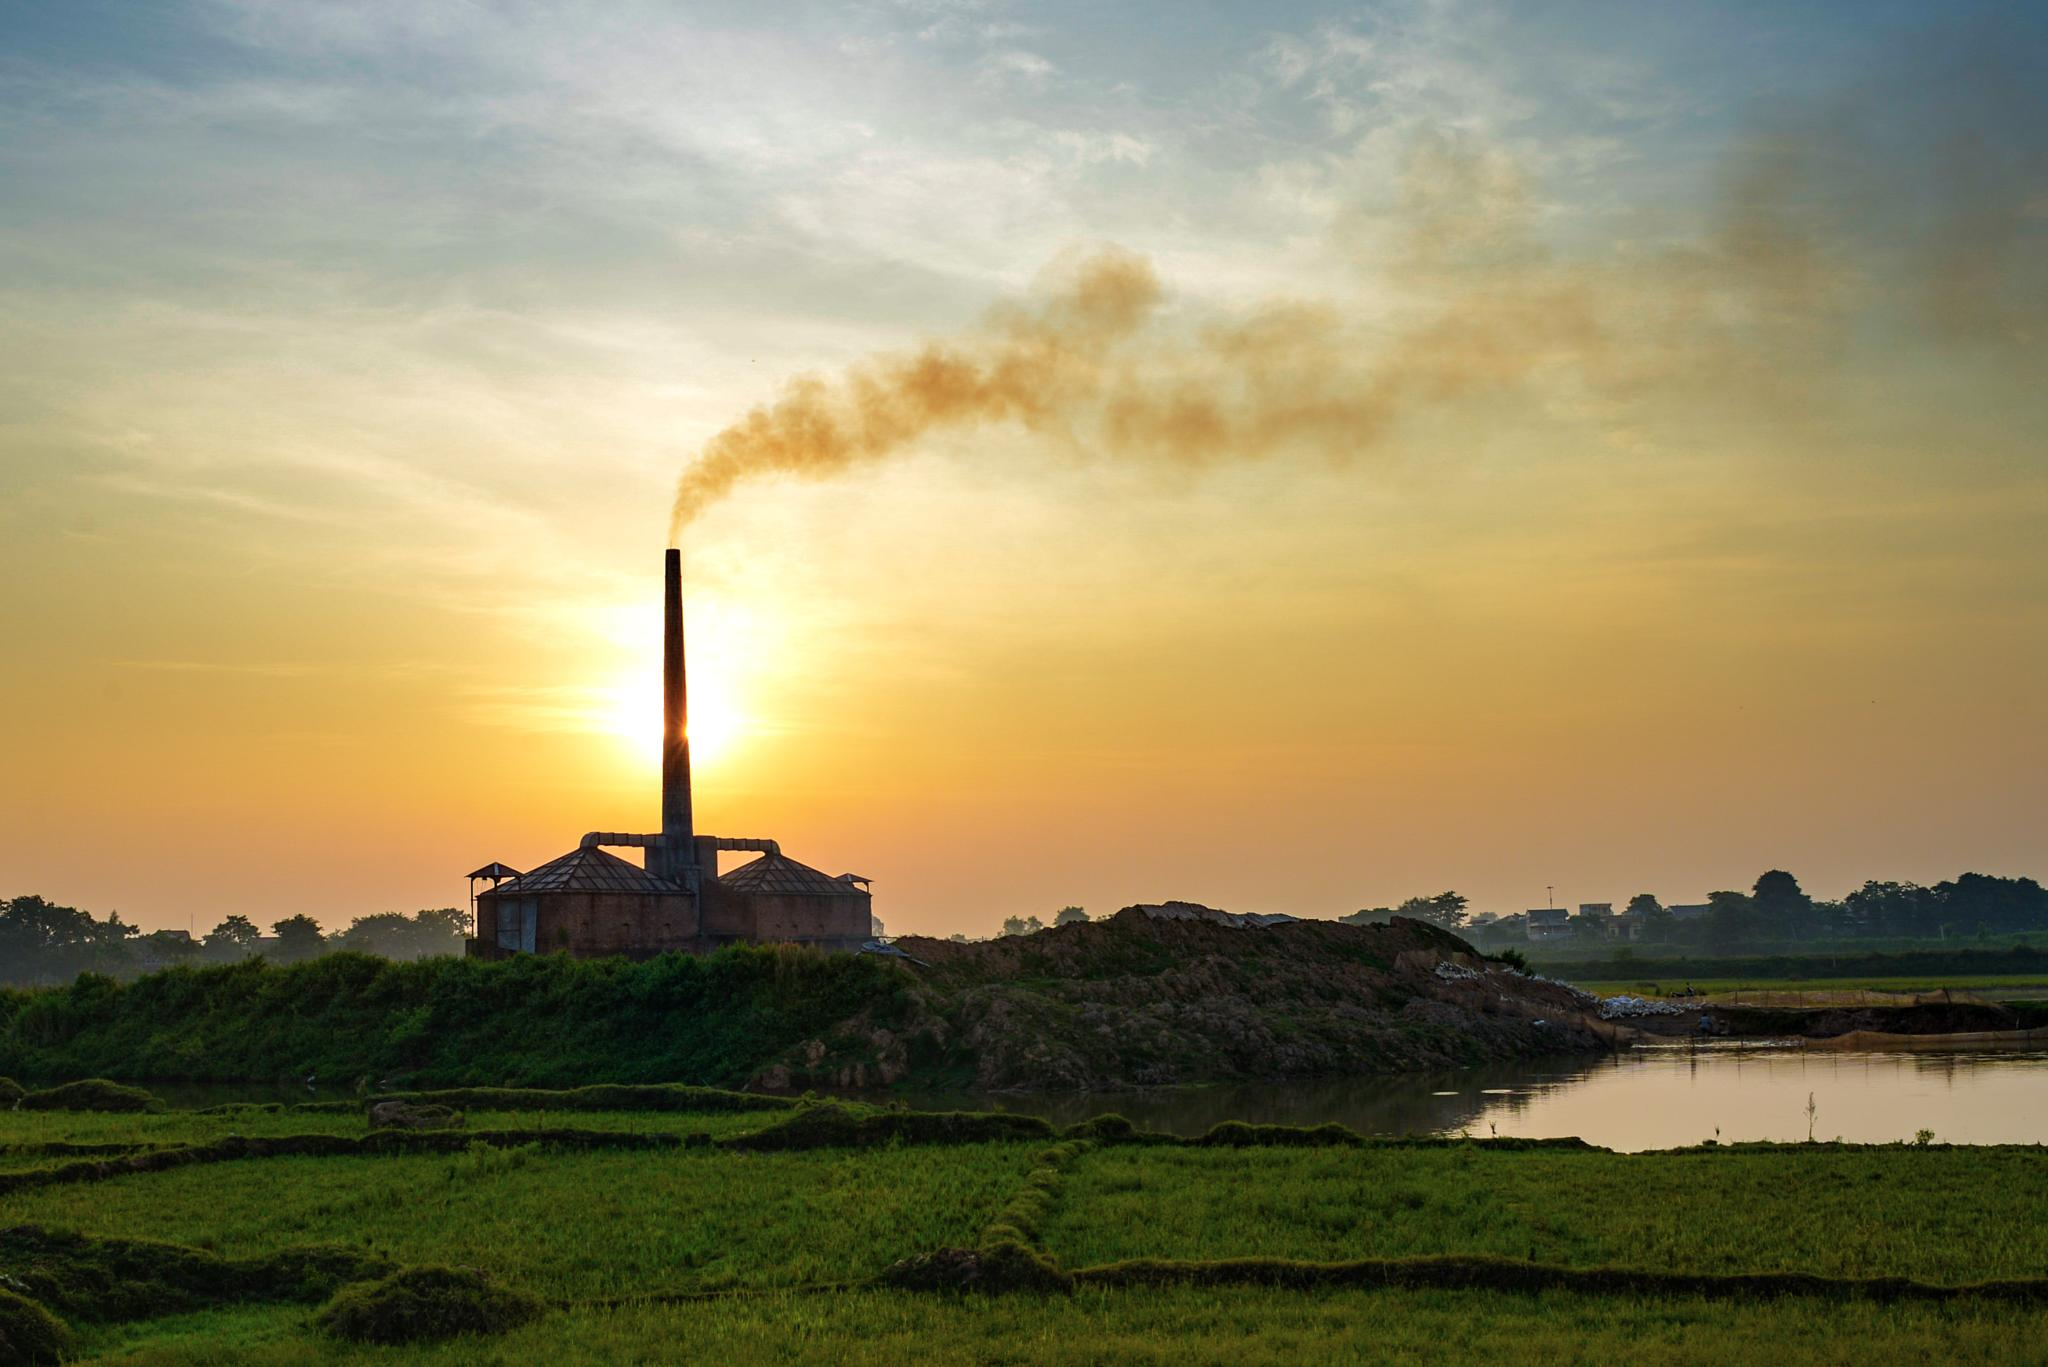 Sunrise from a brick factory by Cuong NM